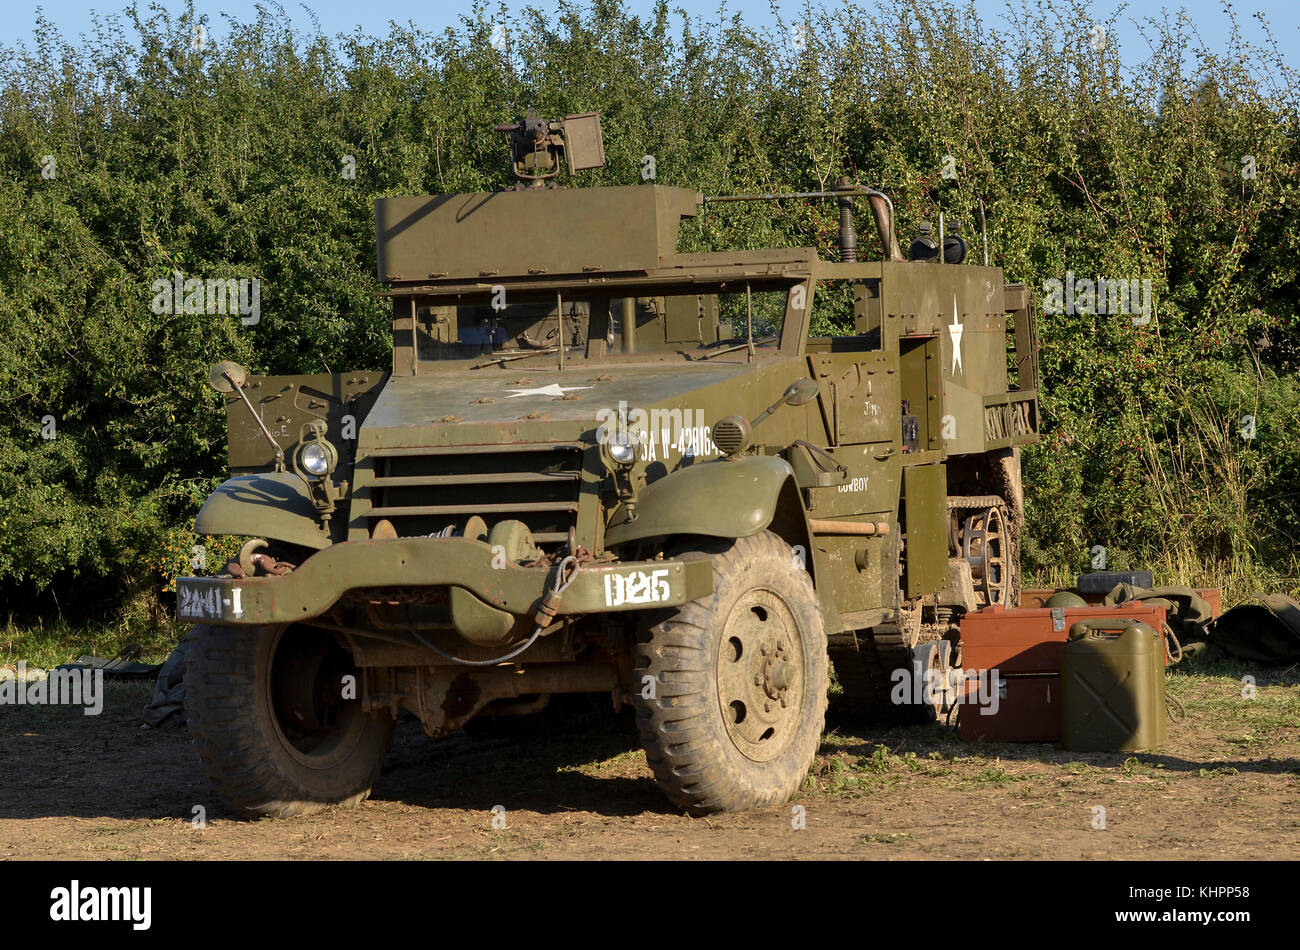 M3 Half-Track, US Army WW2 markings, Cosby Victory Show, UK. - Stock Image